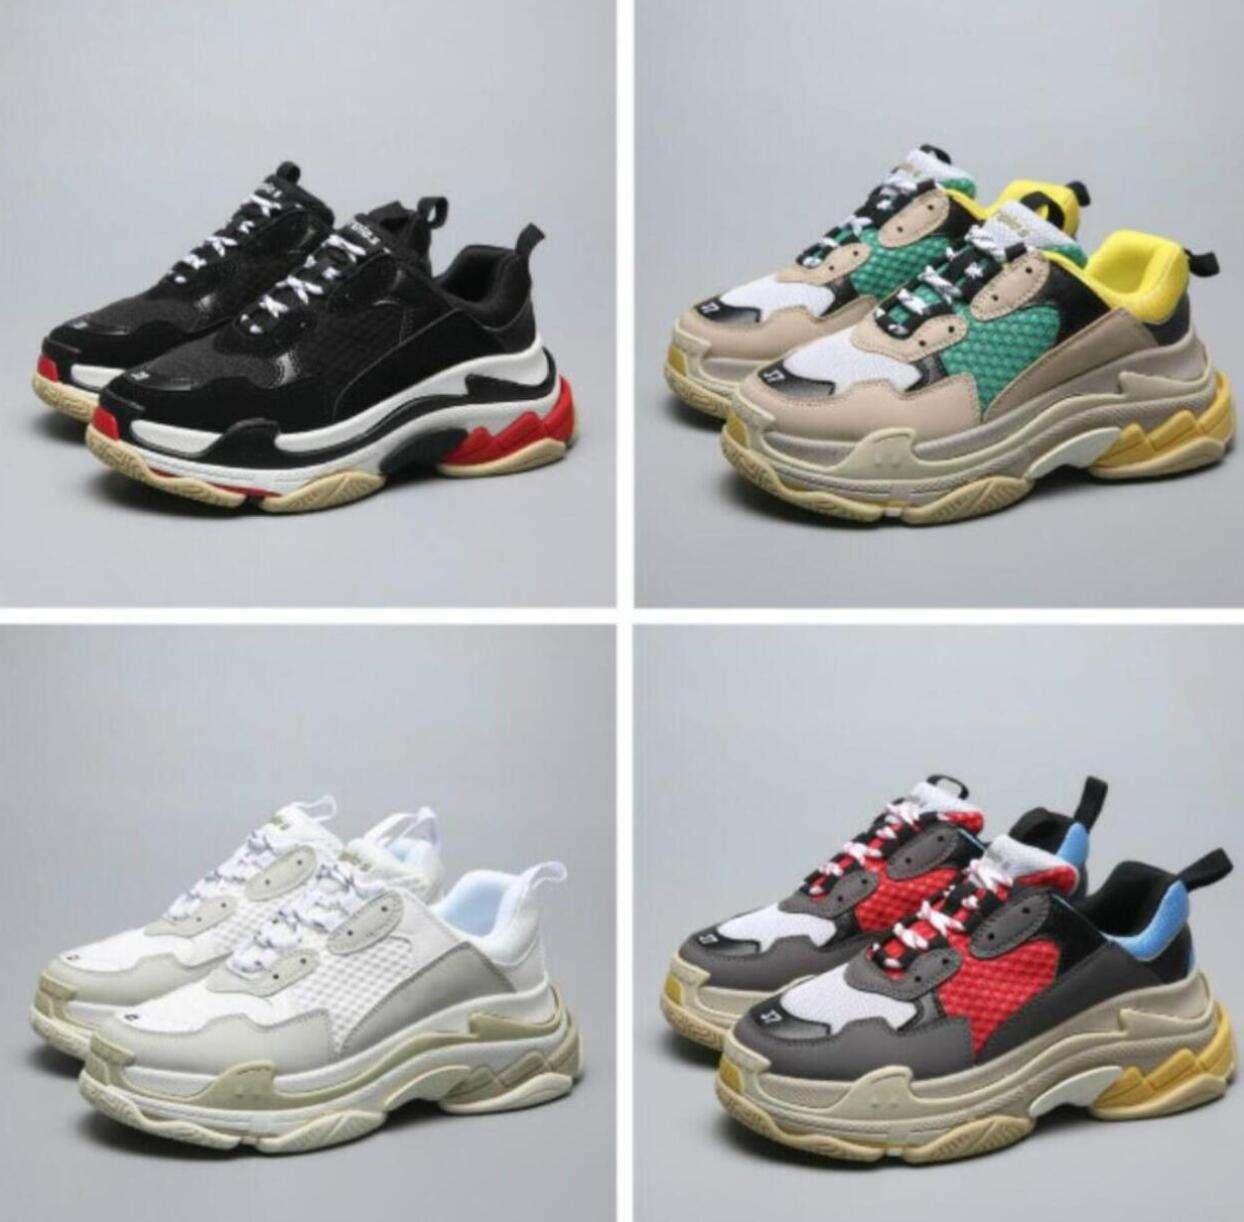 Skechers Shoes New Arrival 2019